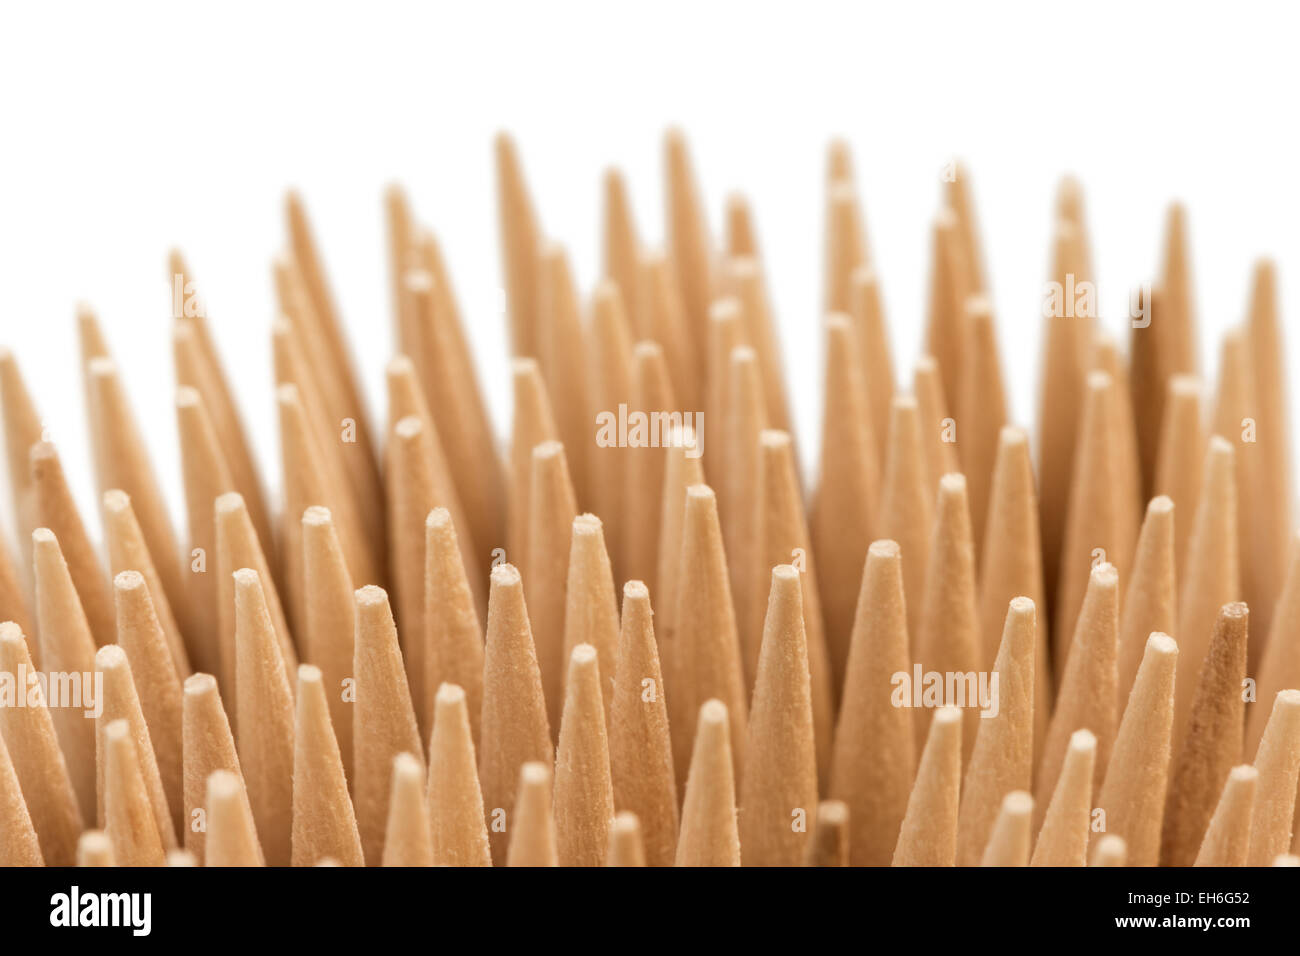 Extreme closeup of stack of wooden toothpicks or cocktail sticks, isolated on white background - Stock Image